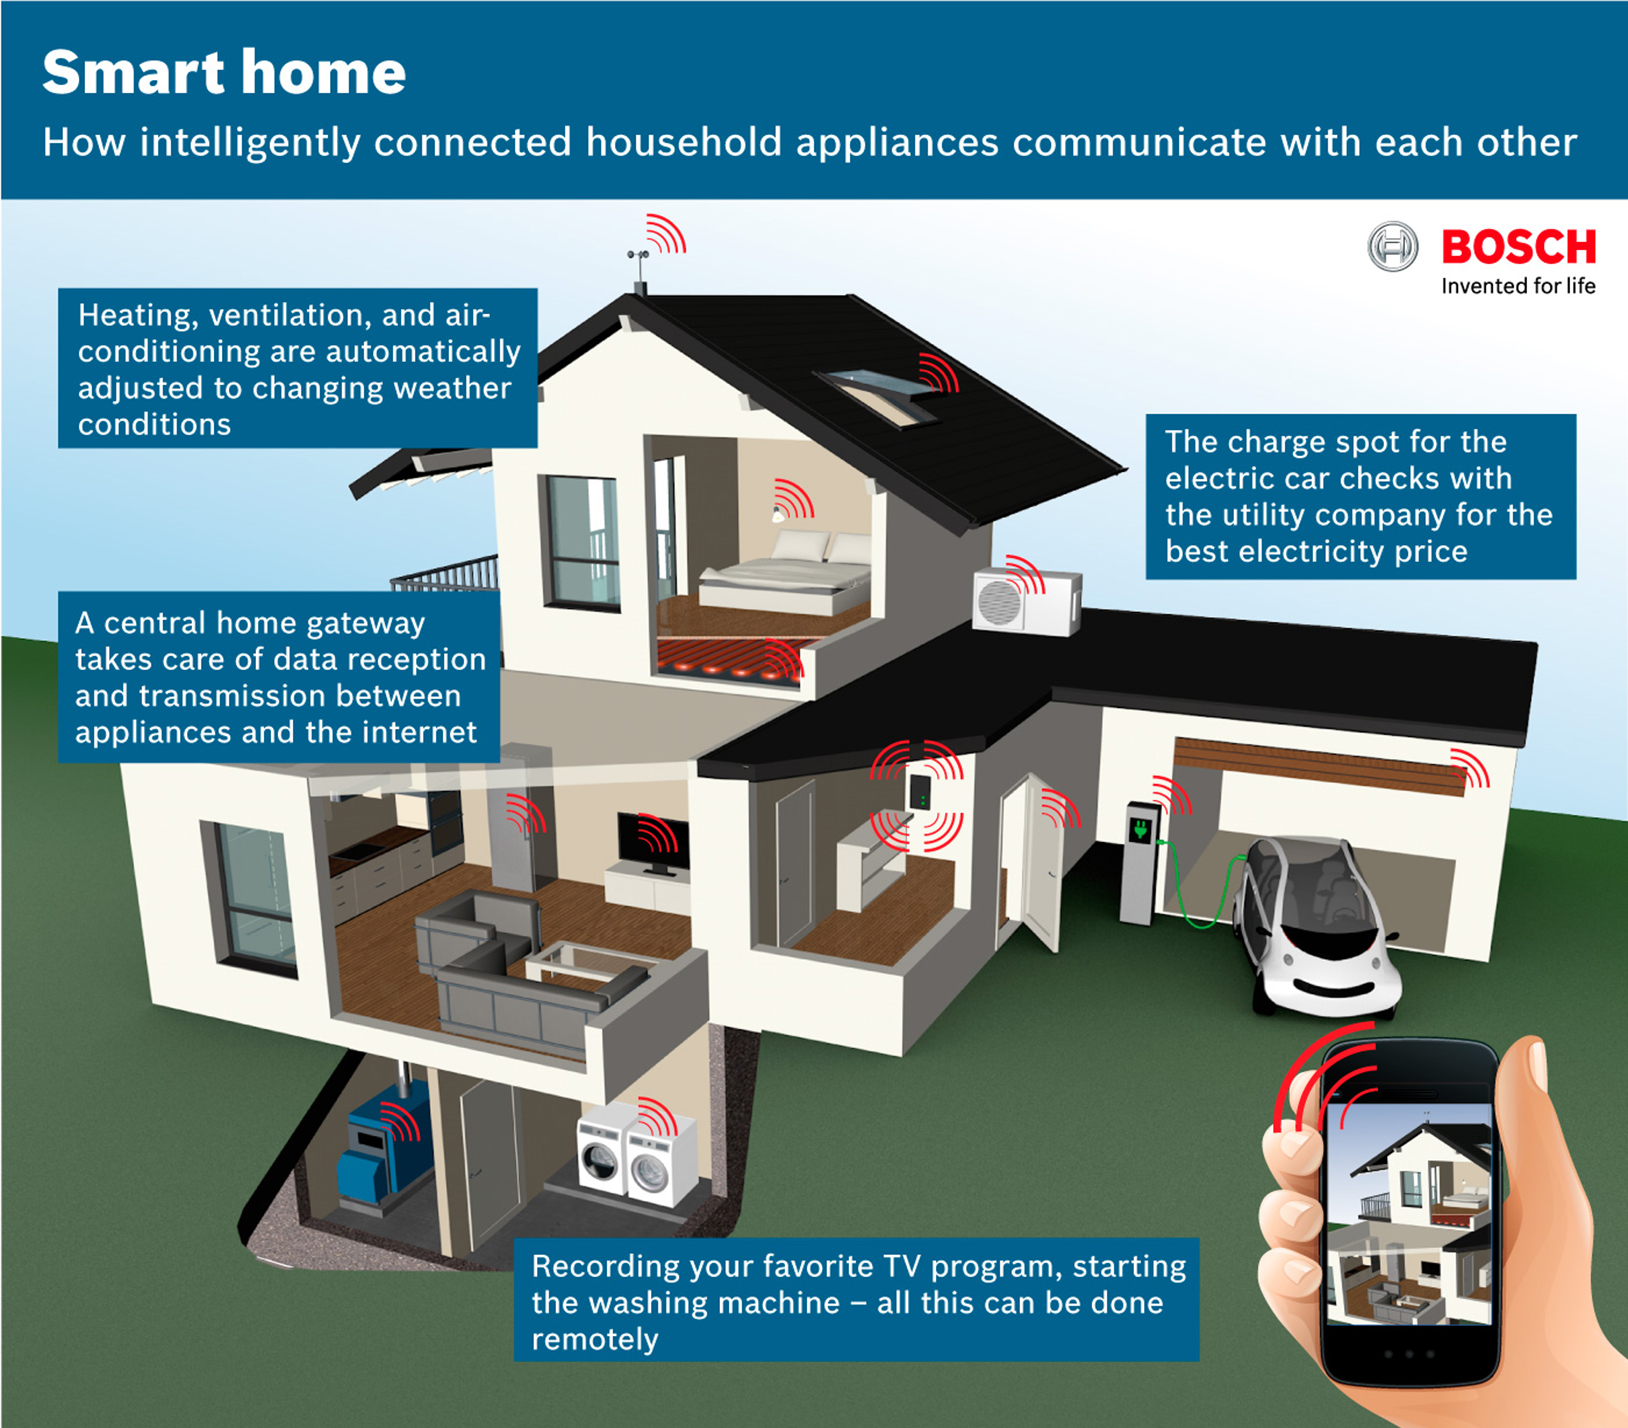 Smart homes: Bosch as systems integrator